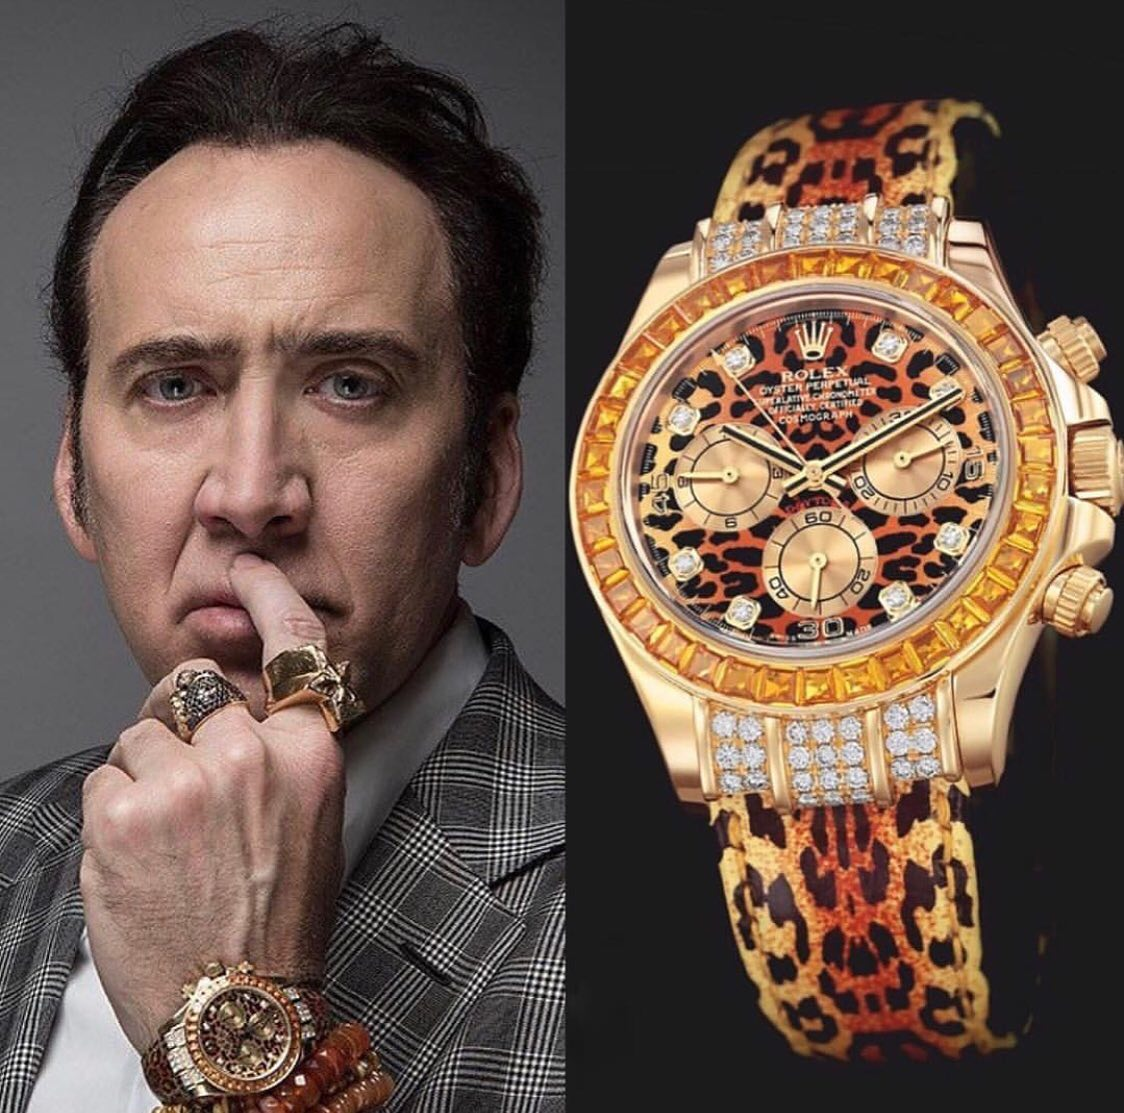 Actor Nicolas Cage wears a special edition Rolex Daytona here, with a Leopard texture diamond dial and a Leopard skin strap 🐆 ️ 70,000 📸 @superwatchman